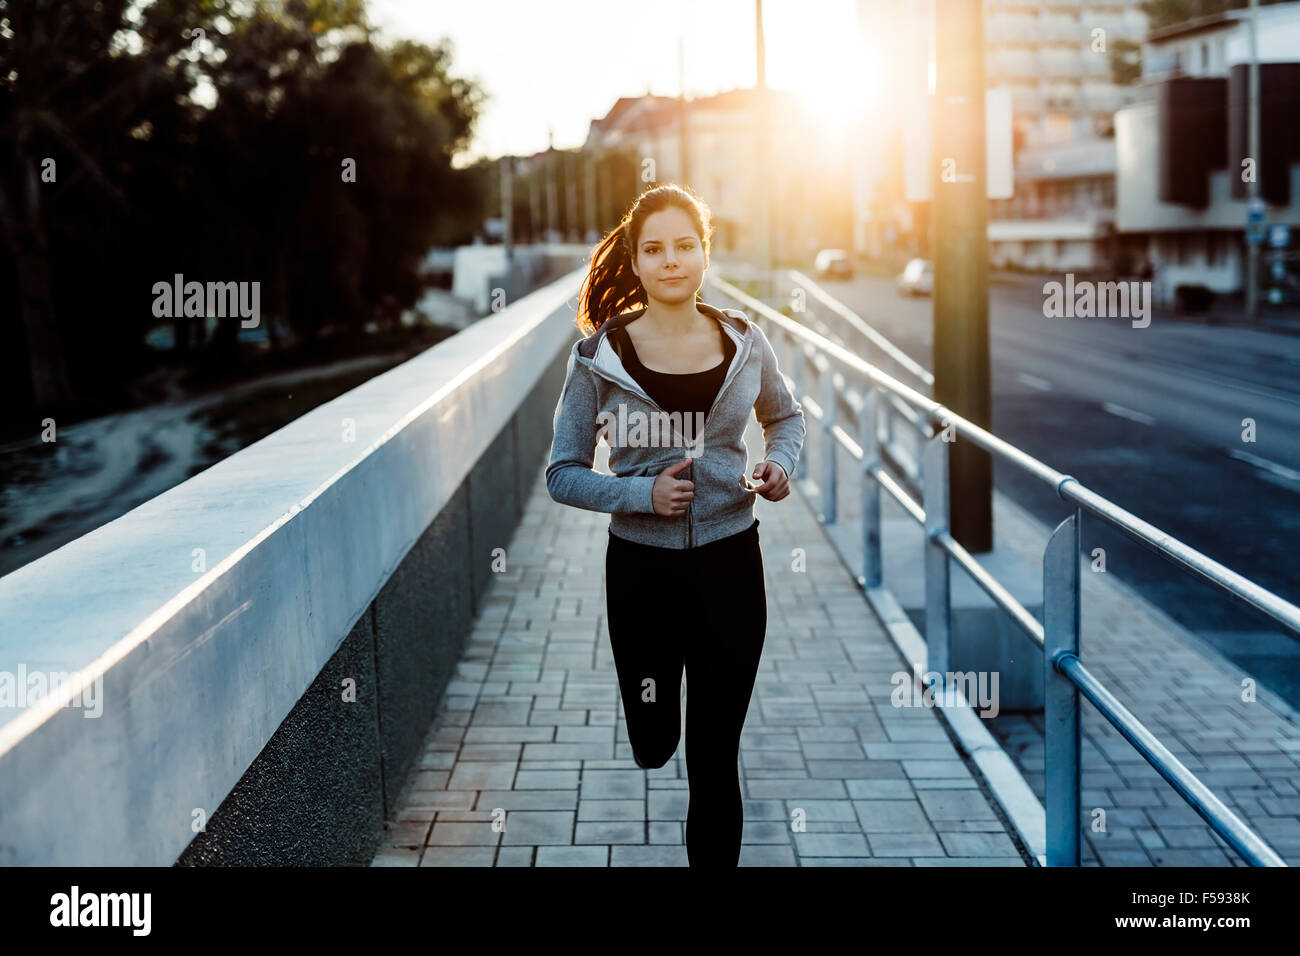 Belle femme jogging en ville et garder son corps en forme Photo Stock